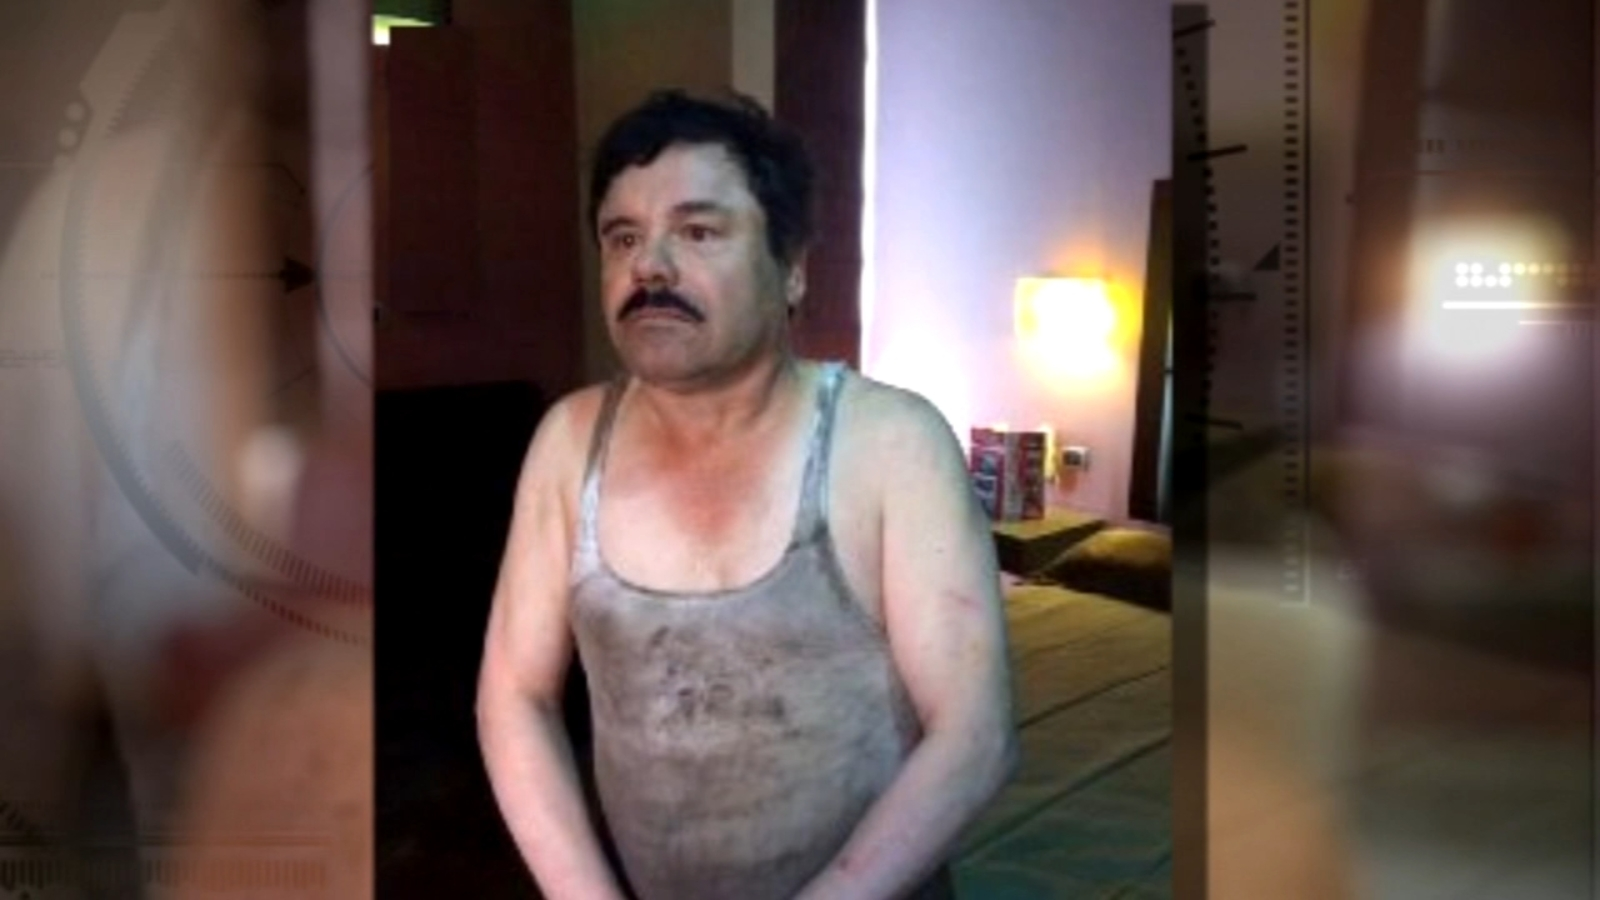 Chicago witness targeted by El Chapo cartel hustled to secure location